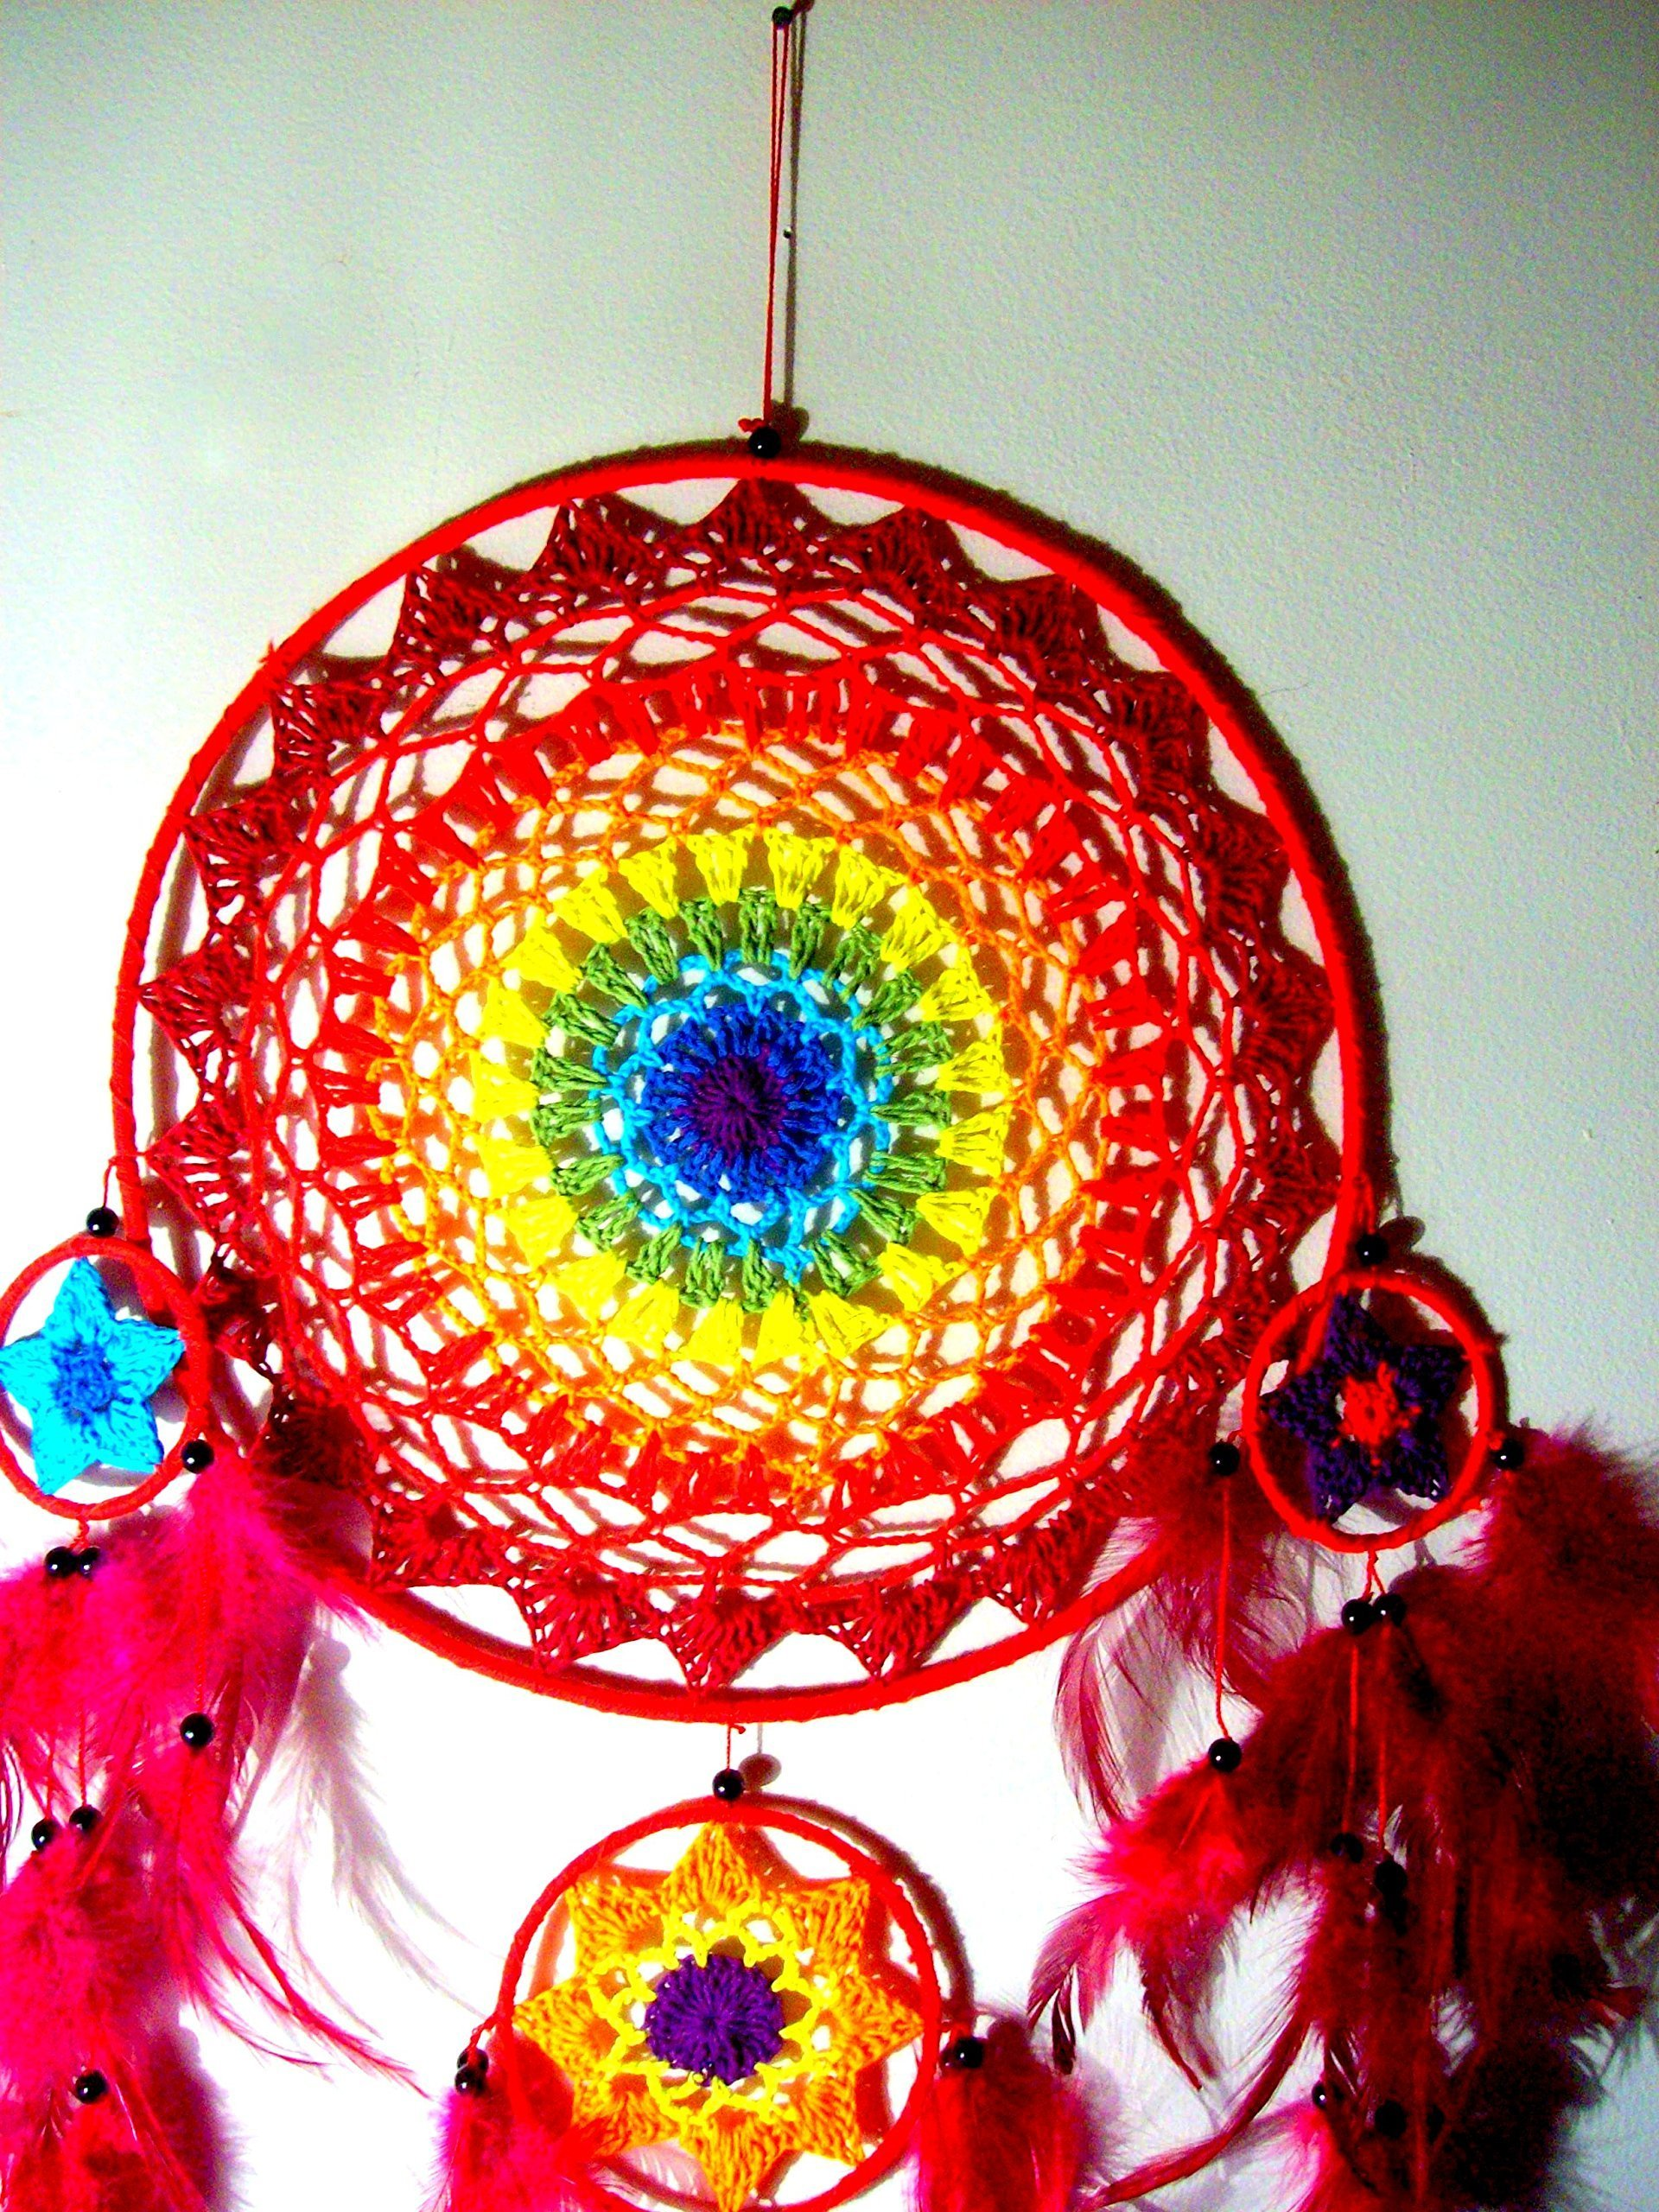 LARGE Dreamcatcher, SACRED CIRCLES, Wall hanging, home decor, Boho dream catcher, Native American, Crochet dreamcatcher mobile, Wall hanging, Tribal, RAINBOW, Chakra colors